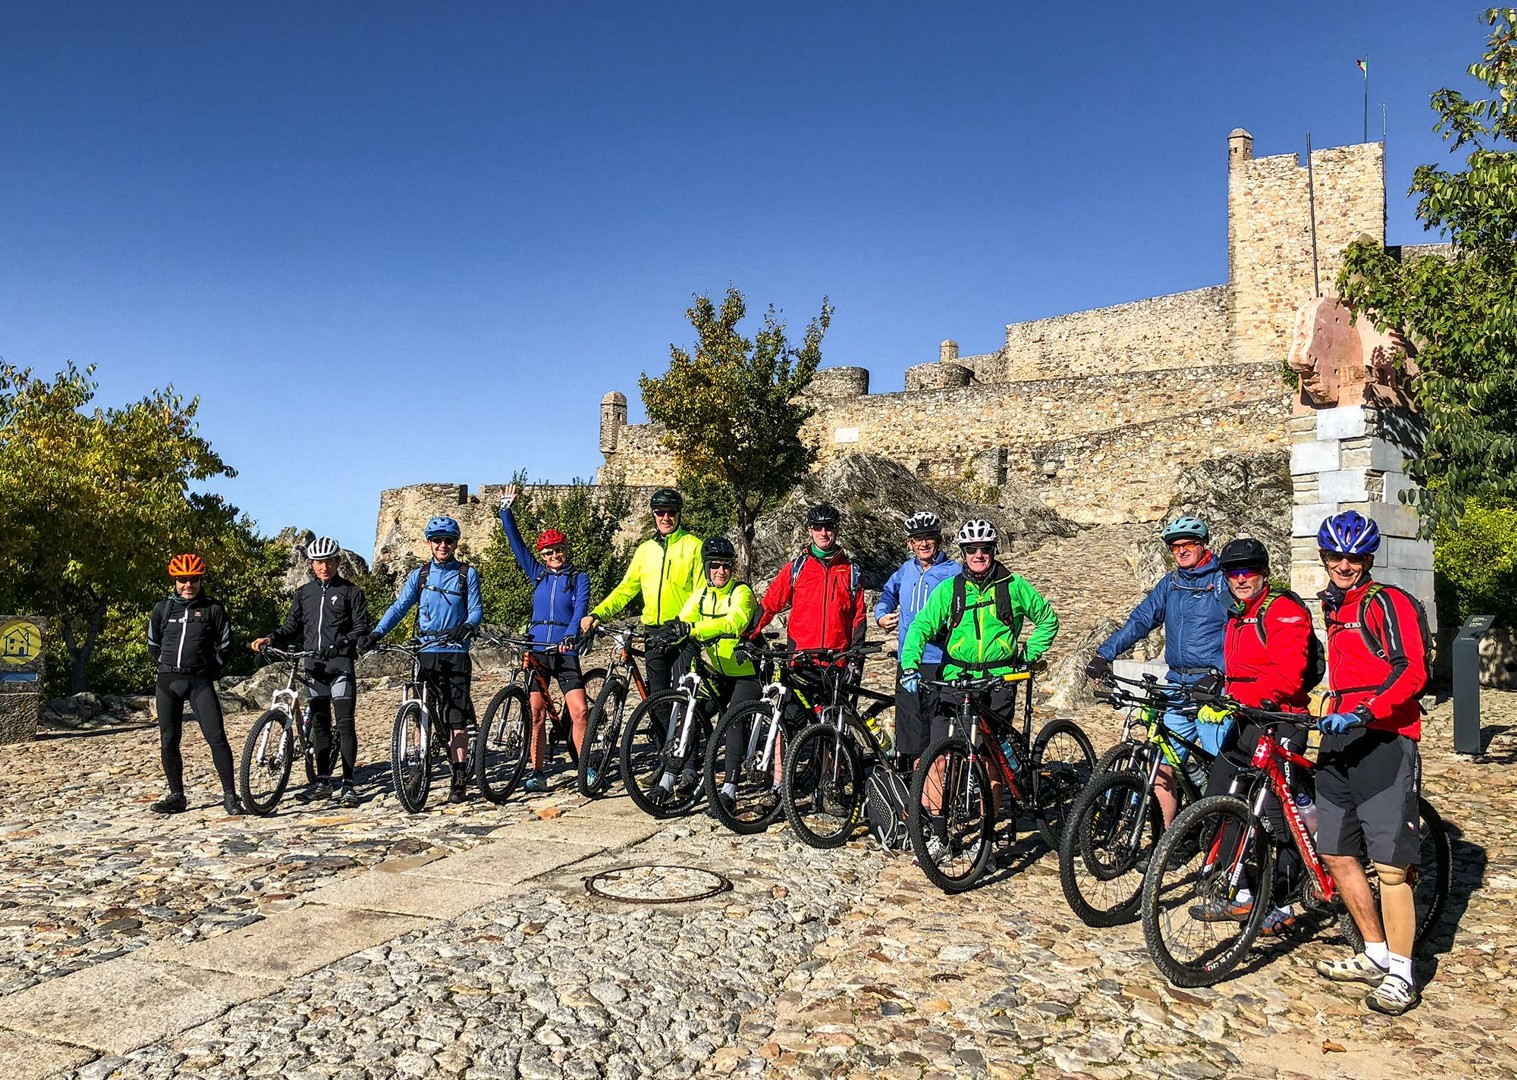 guided-mountain-bike-holiday-in-portugal-saddle-skedaddle.jpg - Portugal - Roman Trails - Guided Mountain Bike Holiday - Mountain Biking